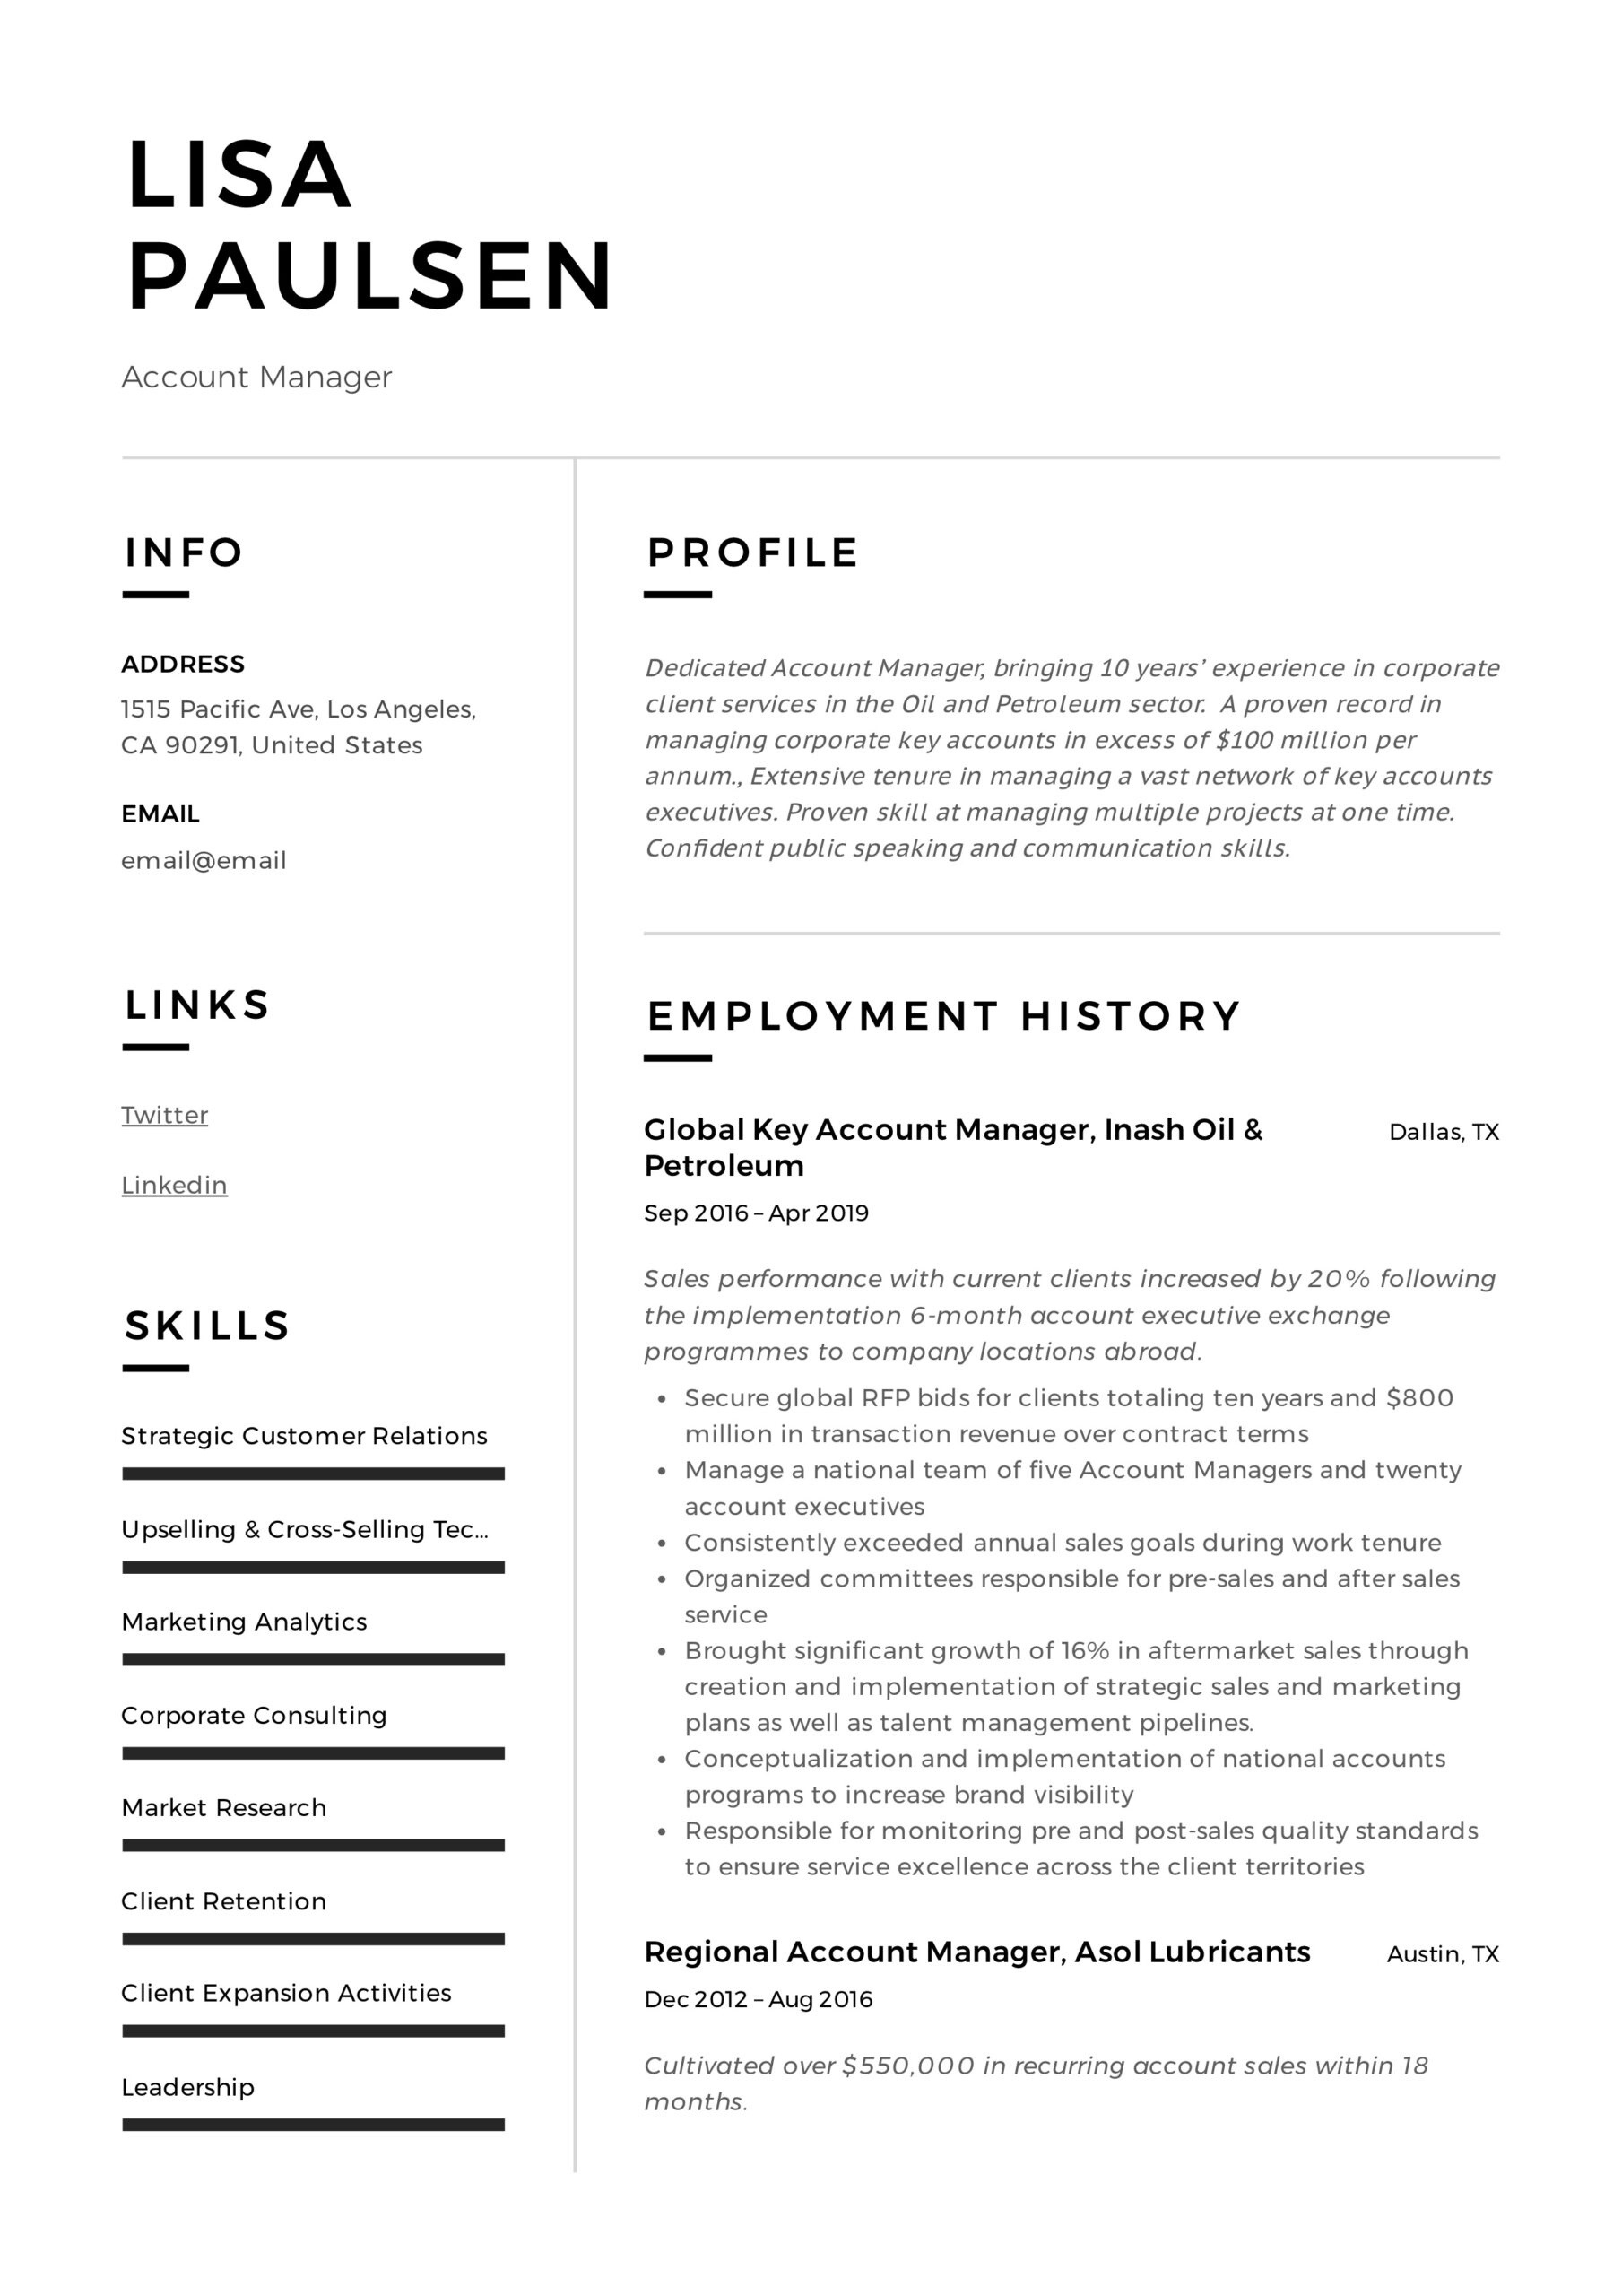 account manager resume writing guide examples accounting coordinator sample lisa paulsen Resume Accounting Coordinator Resume Sample